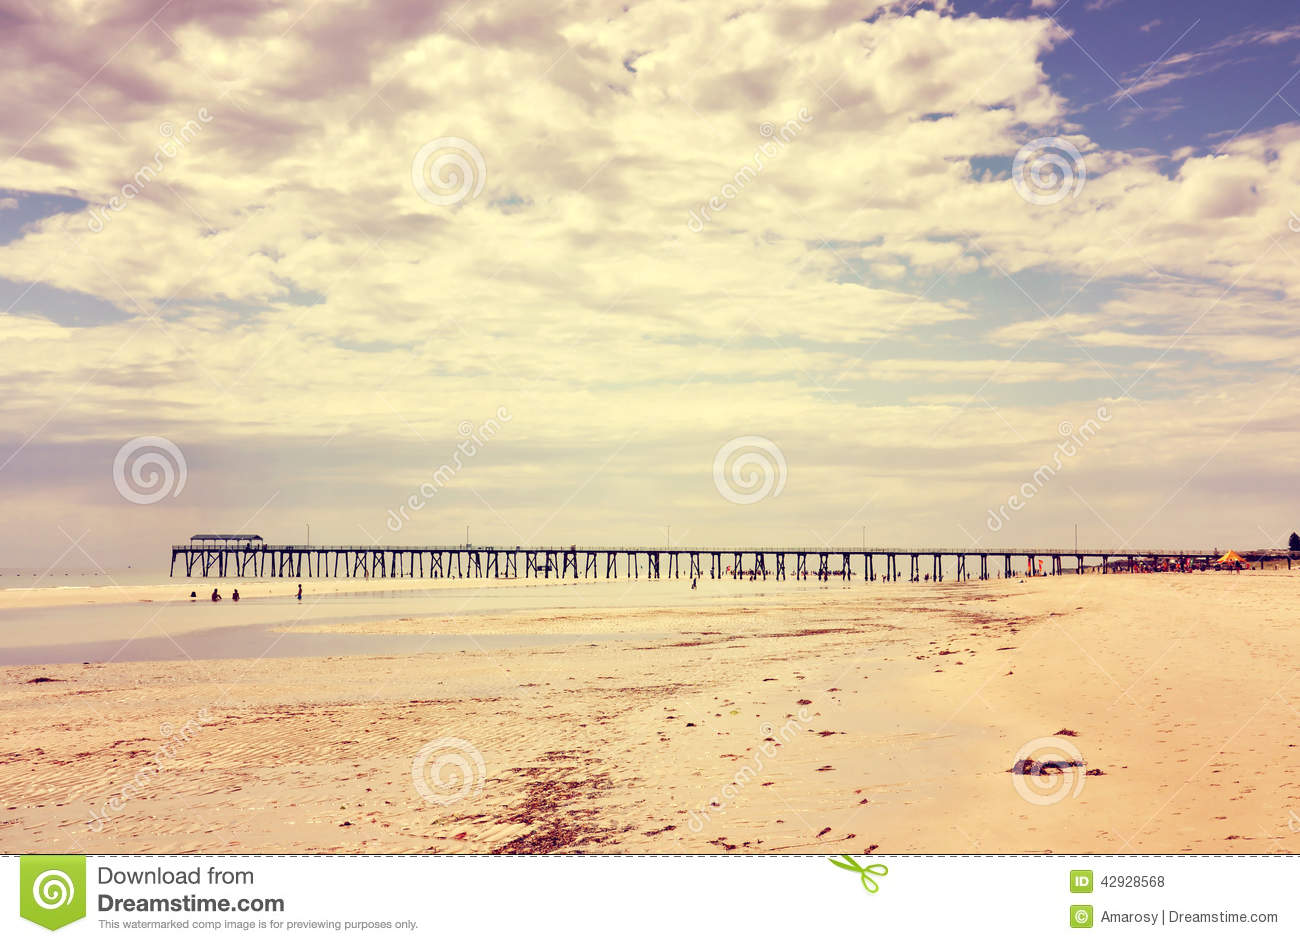 Retro Vintage Instant Filter Wide Open Beach With